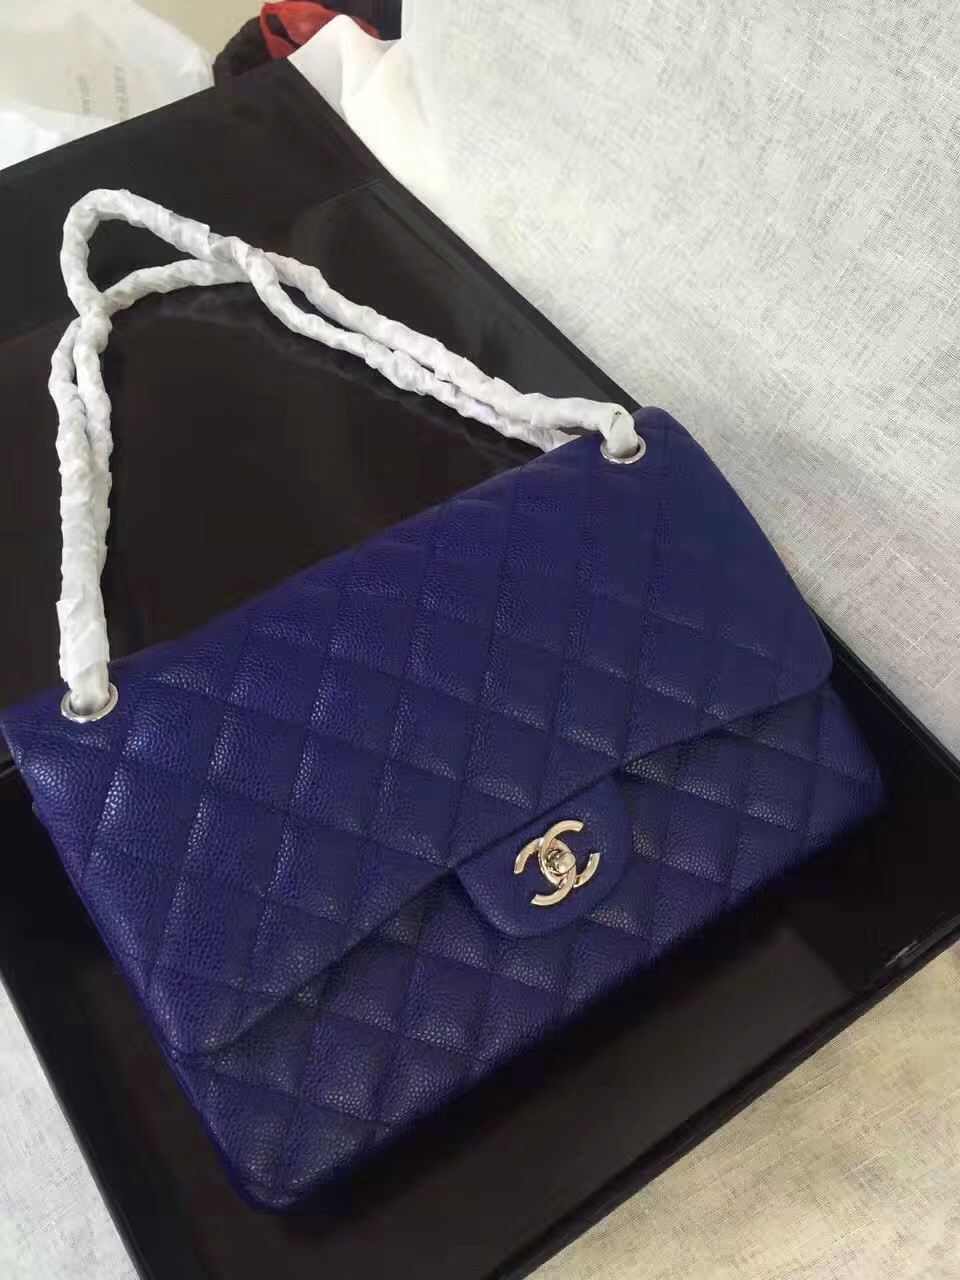 228f180300ece6 Chanel Reissue 2.55 Flap Bag size 227 in Blue Caviar Leather - Bella ...